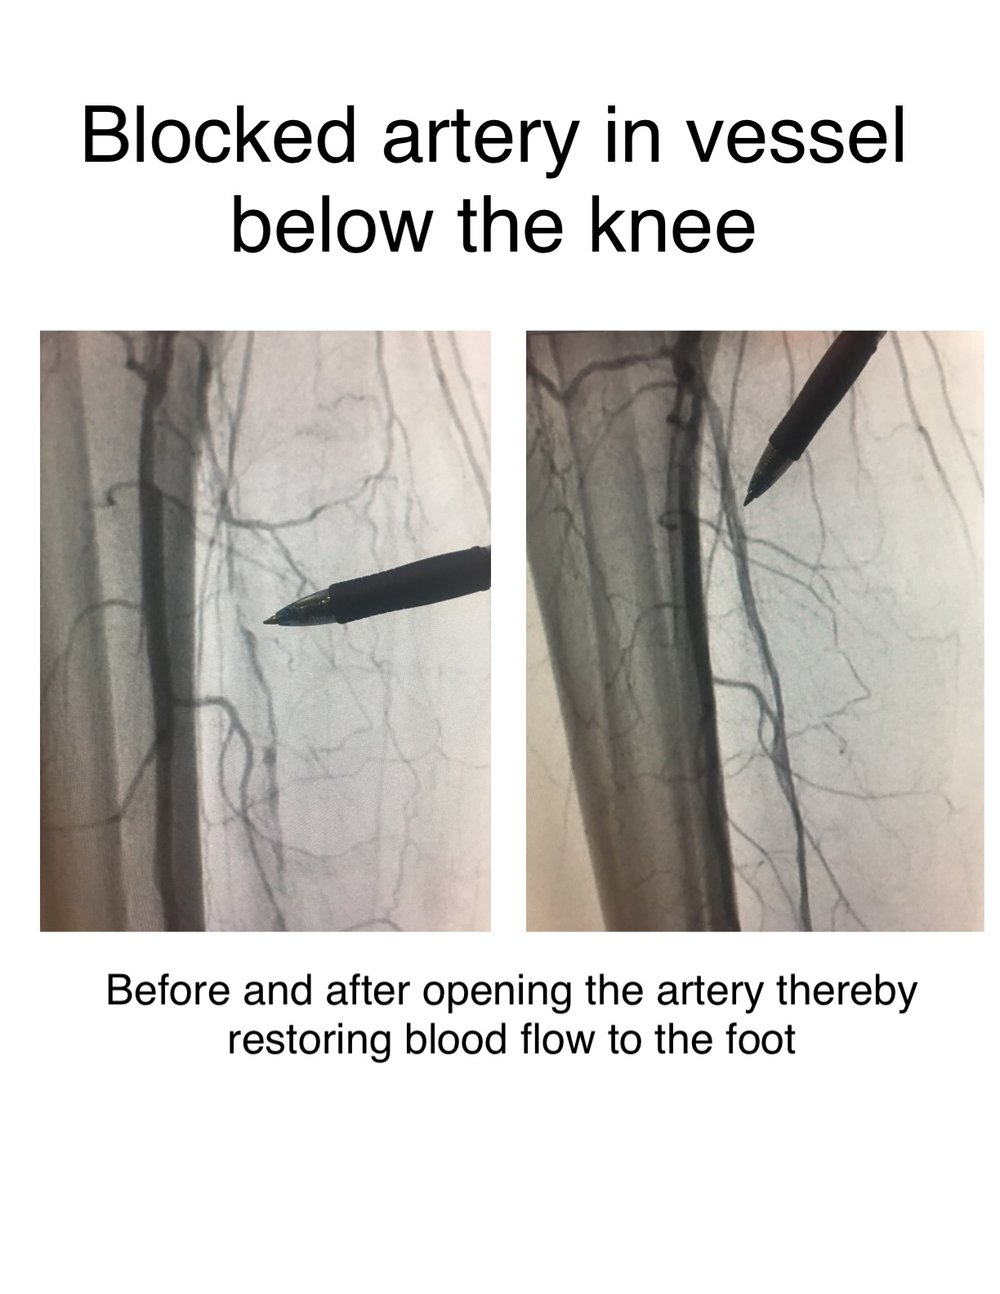 Blocked arteries in a leg can cause claudication. Claudication is pain typically in the calves when walking a particular distance that resolves with cessation of walking. The most common cause of this symptom is a blocked artery. We diagnose the problem in the office with ultrasound then open the artery in the hospital as outpatient. The artery is accessed usually through the opposite groin but sometimes through an artery in the foot under ultrasound and sometimes through the radial artery in the arm. Intervention is performed using balloons, wires, laser, and or diamondback orbital atherectomy. Plaque is removed and the vessel ballooned. This typically takes about anywhere from one hour to four hours and is done under anesthesia. The majority of patients go home following the procedure the same day.